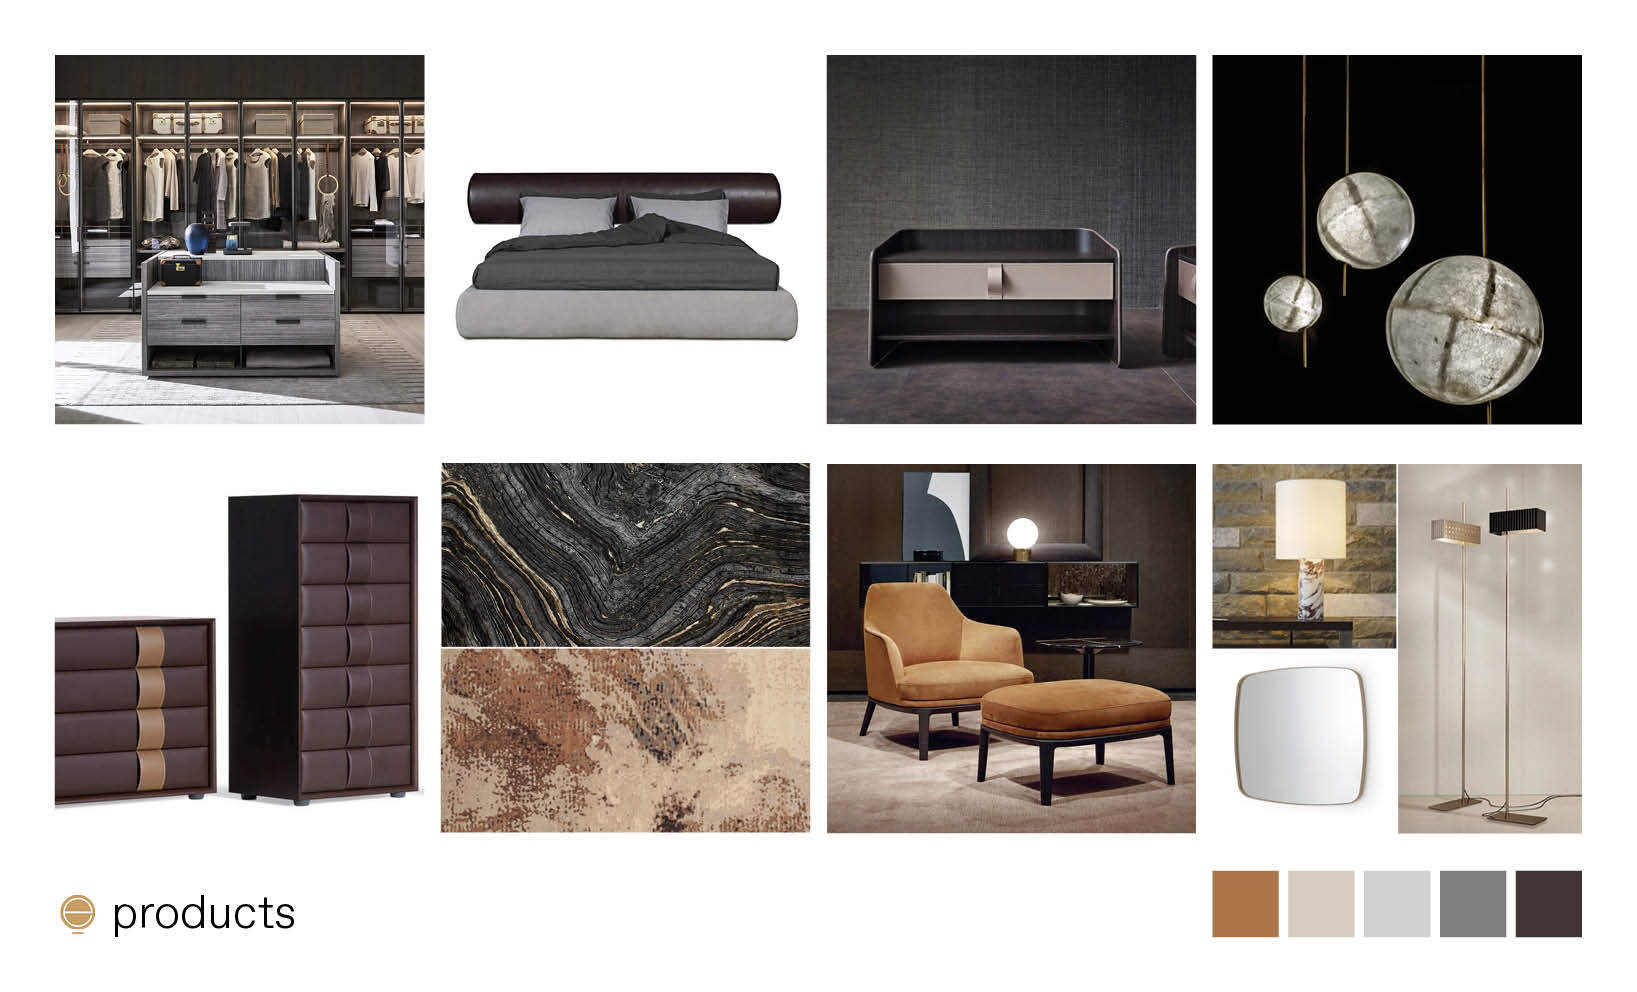 luxury Italian bedroom furniture moodboad and high end products composition made by Esperiri